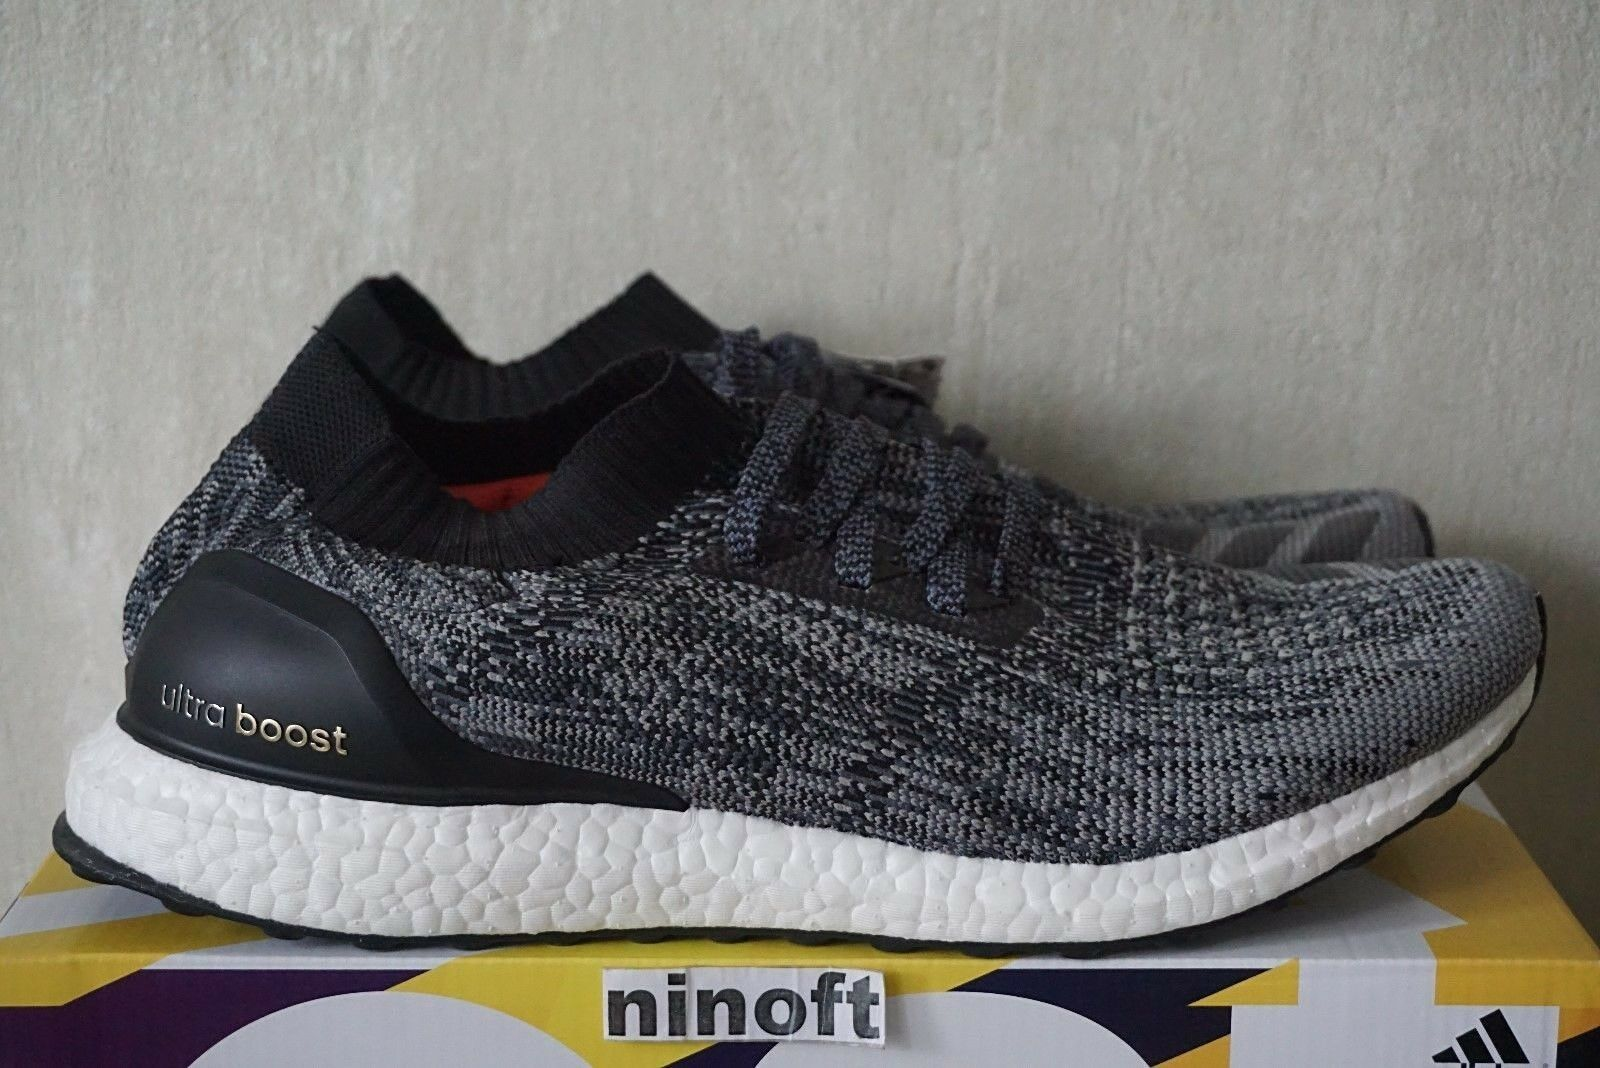 Adidas Ultra Boost Uncaged Black White BB3900 new men running limited primeknit